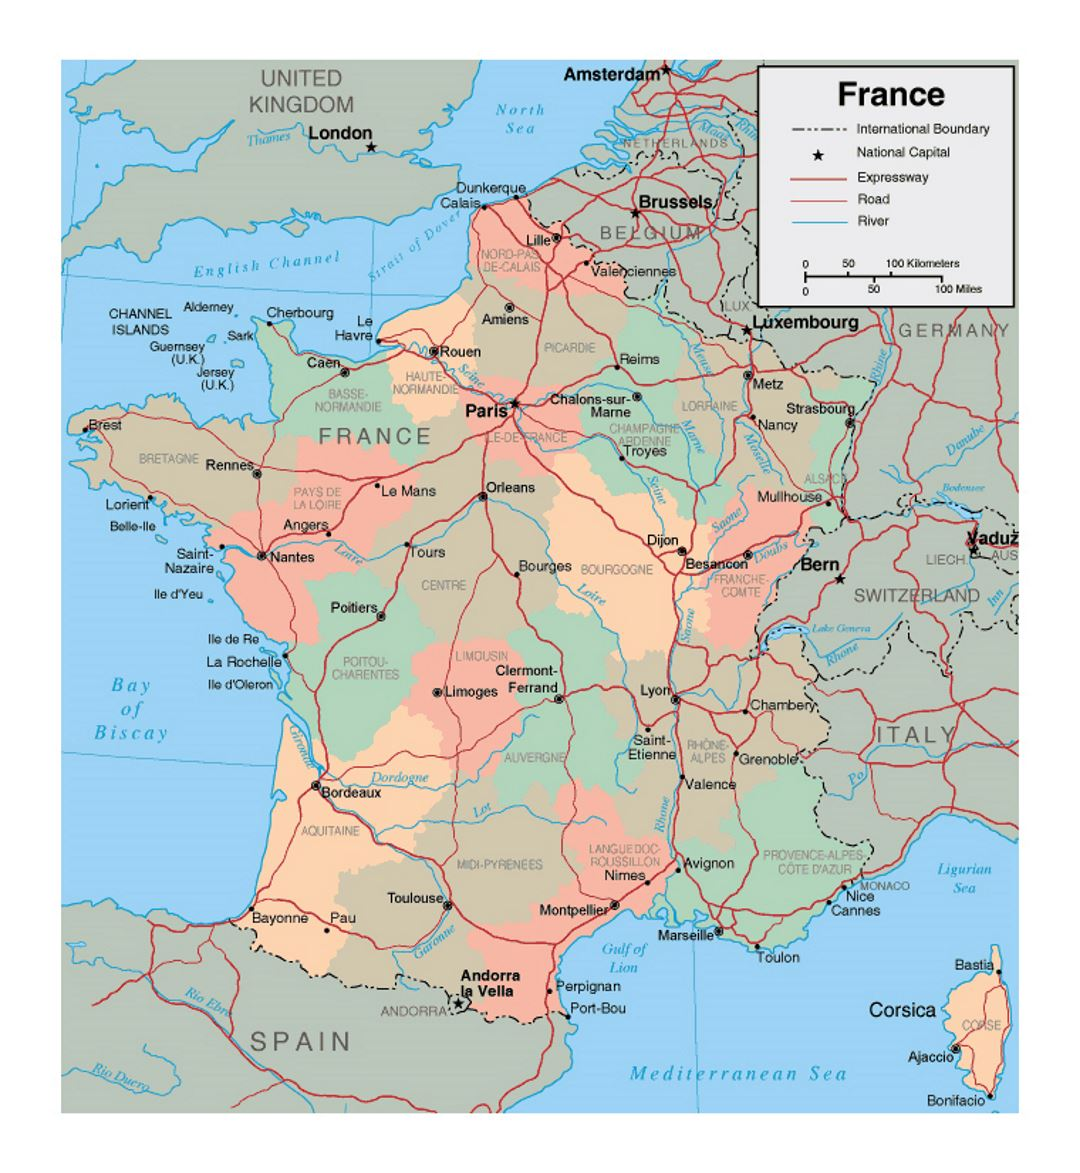 Political And Administrative Map Of France With Major Cities - Major cities in france